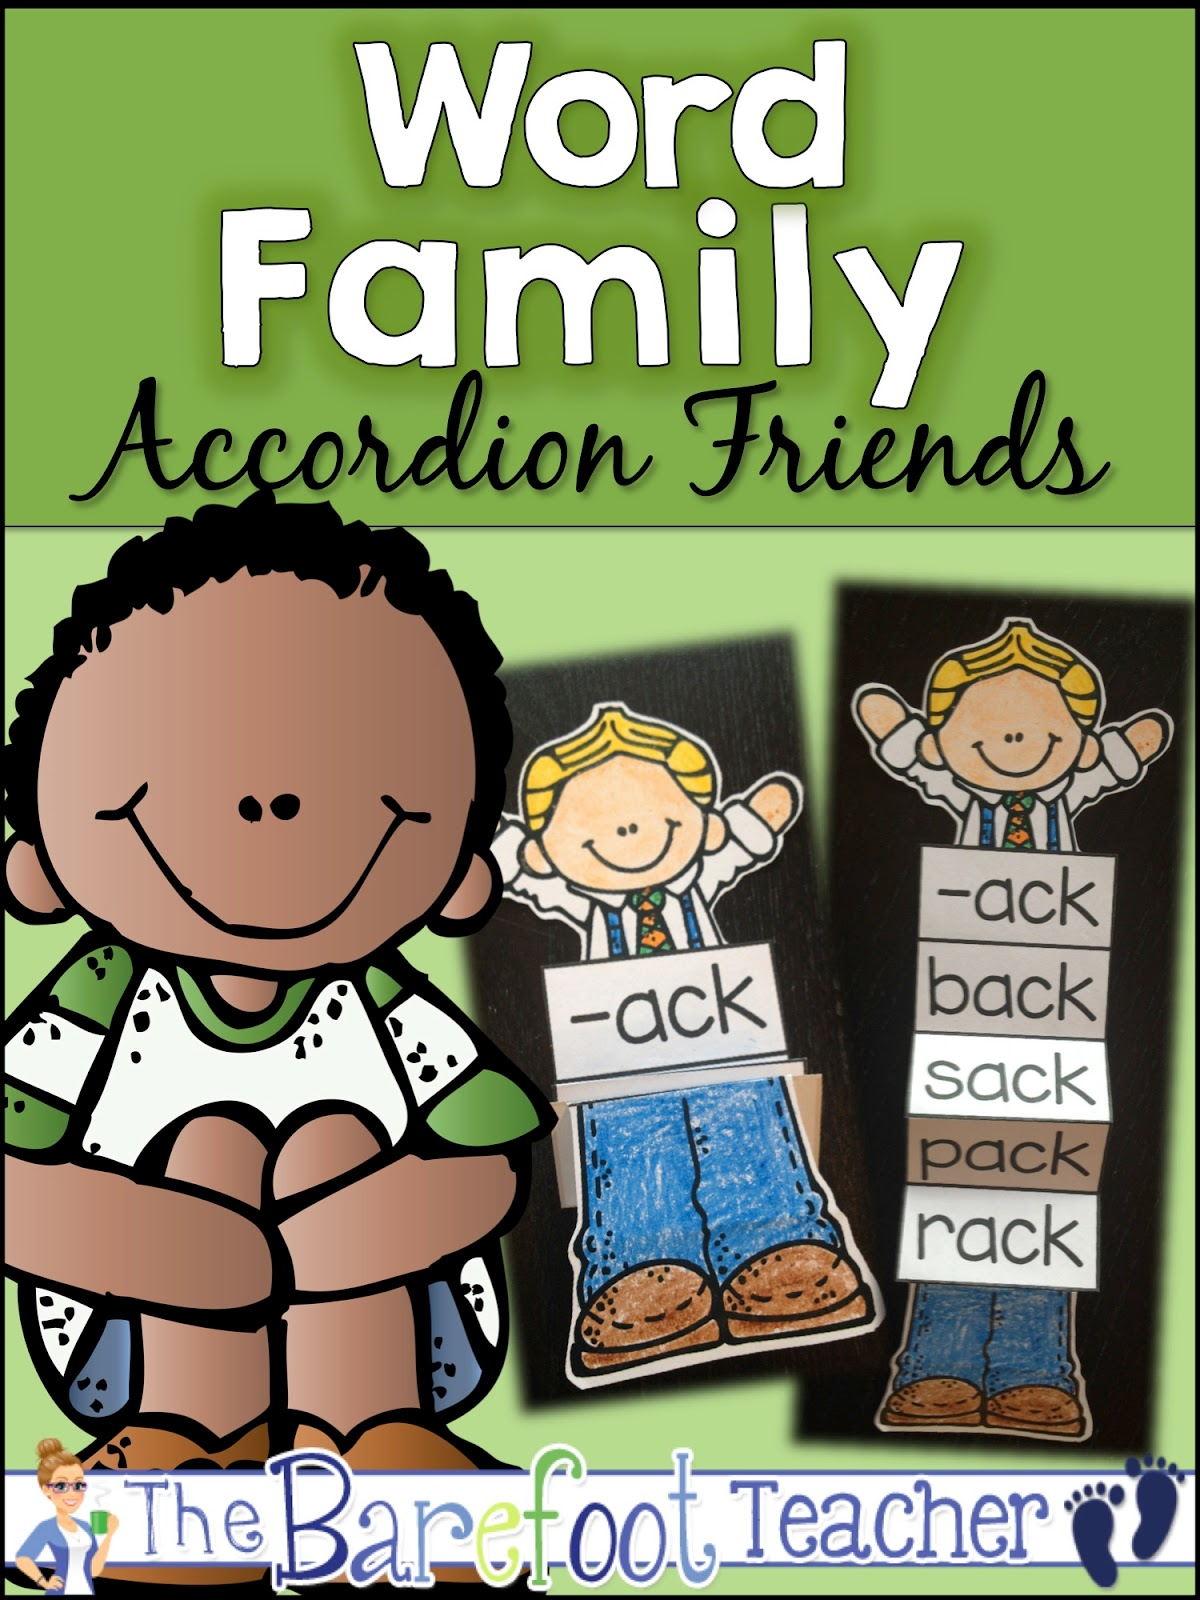 The Barefoot Teacher Word Family Accordion Friends